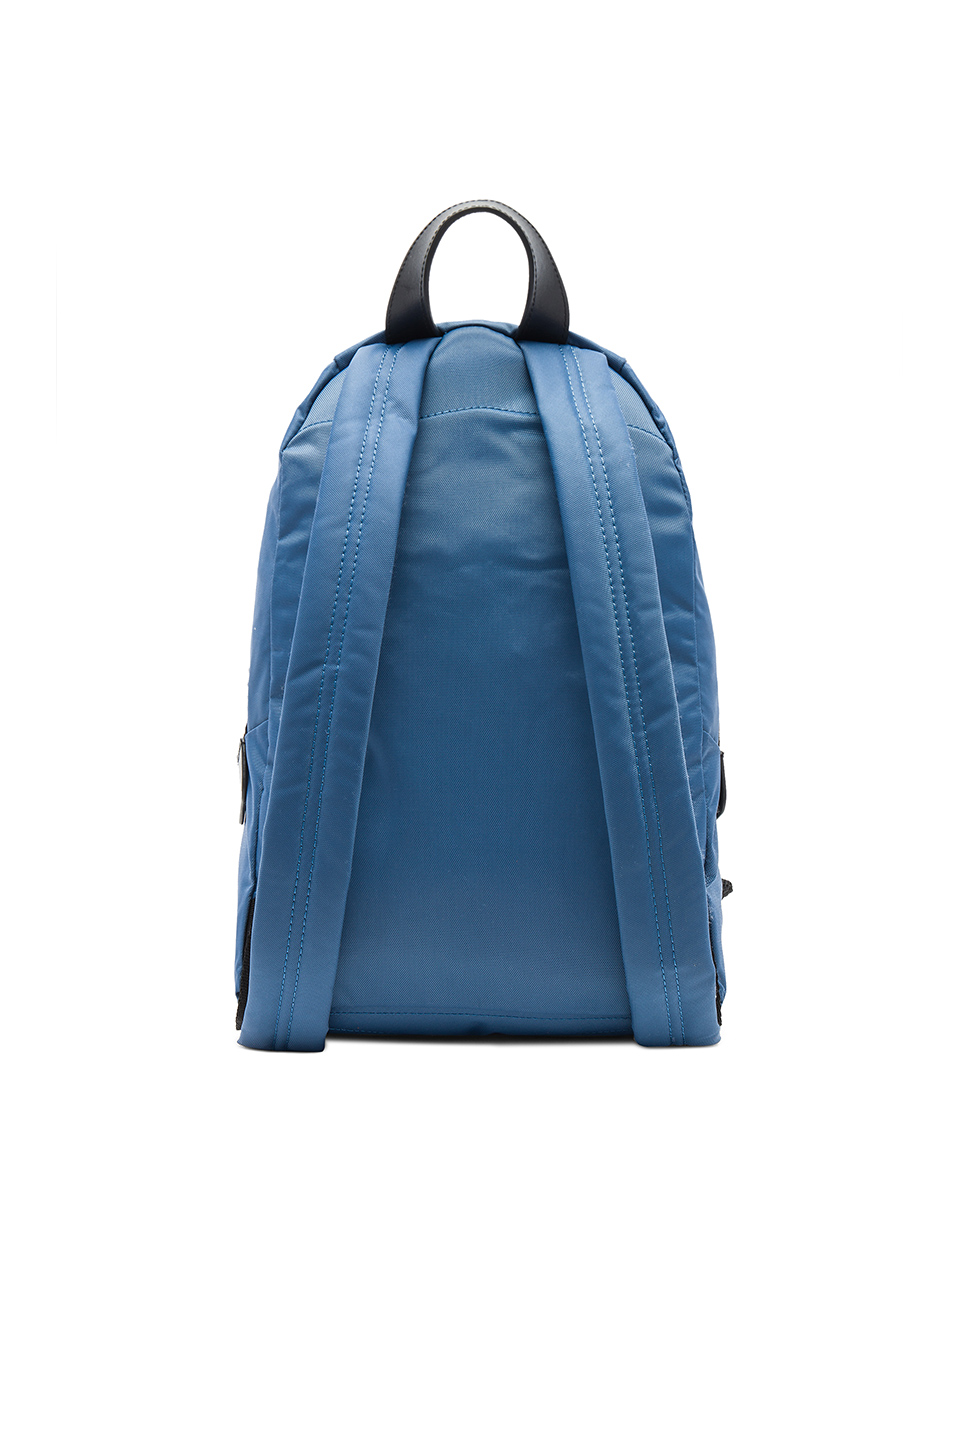 Marc Jacobs Mini Backpack in Vintage Blue